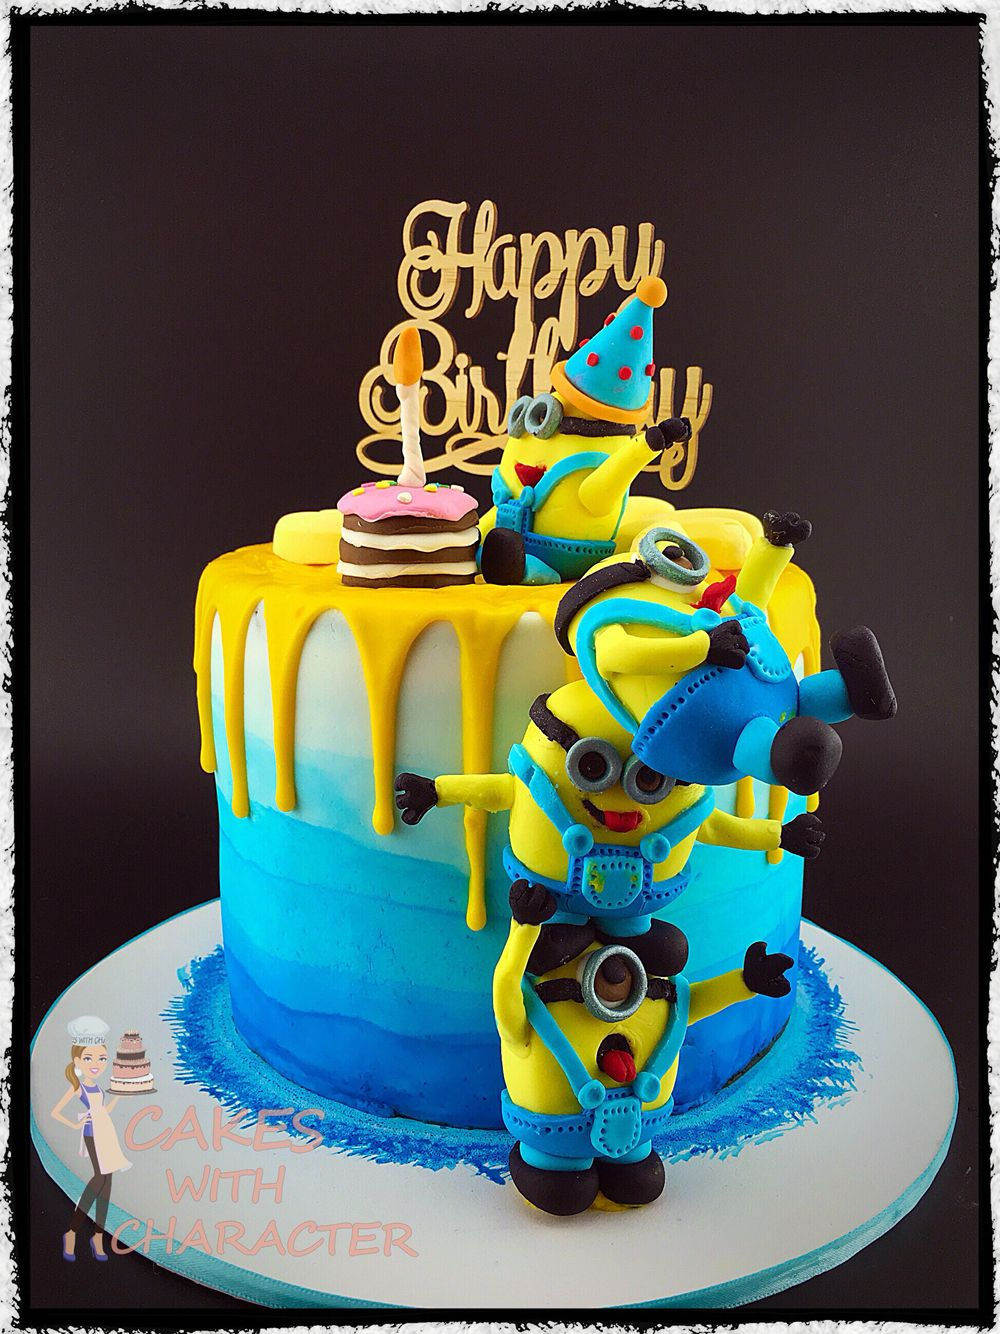 Tower of fondant minions on ombre blue cake with yellow chocolate